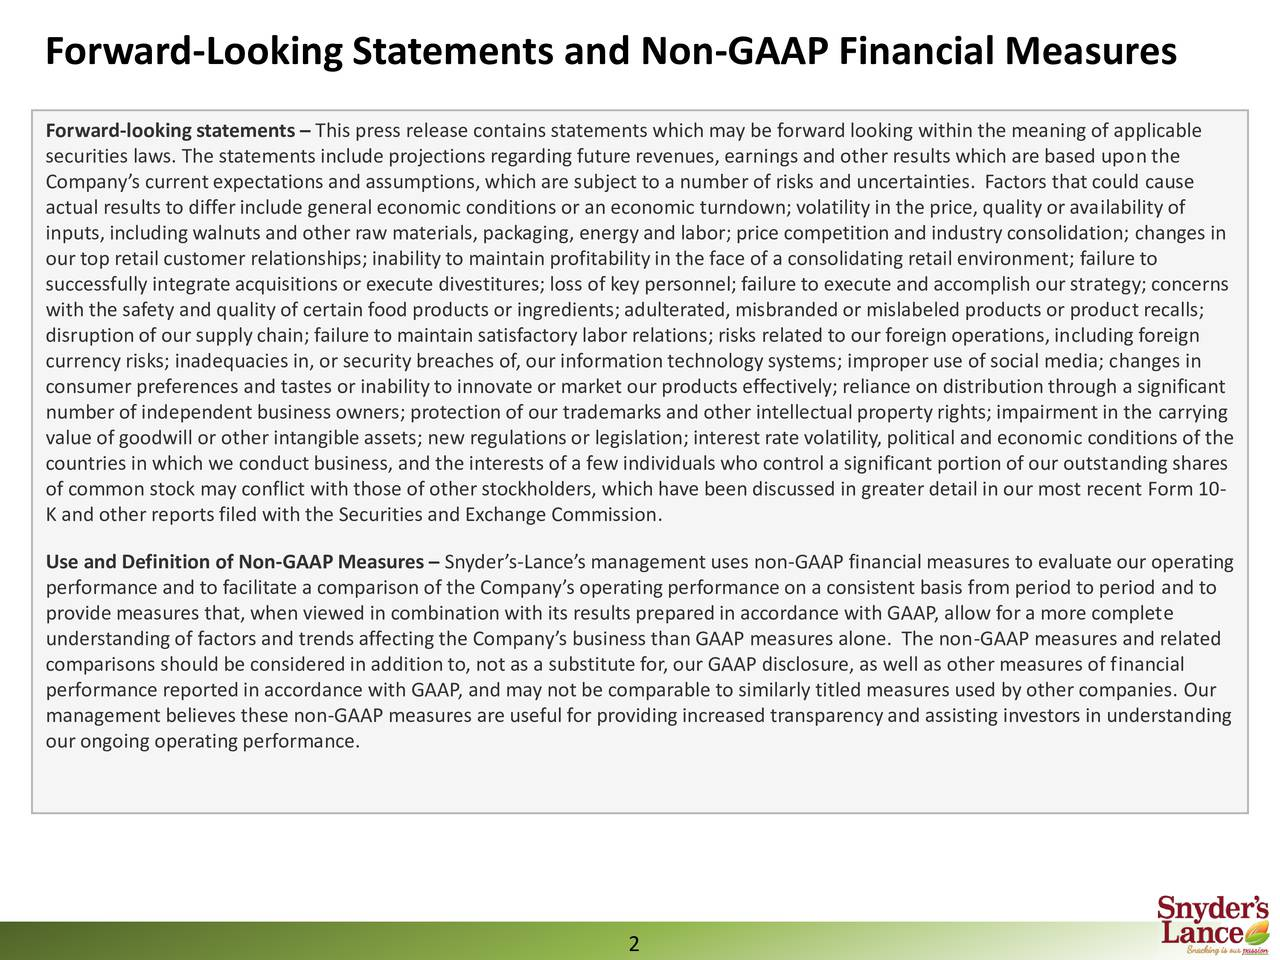 Forward-looking statements  This press release contains statements which may be forward looking within the meaning of applicable securities laws. The statements include projections regardingfuture revenues, earnings and other results which are based upon the Companys current expectations and assumptions, which are subject to a number of risks and uncertainties. Factors that could cause actual results to differinclude general economic conditions or an economic turndown; volatility in the price, qualityor availability of inputs, includingwalnuts and other raw materials, packaging, energy and labor; price competition and industryconsolidation; changes in our top retail customer relationships; inabilityto maintain profitabilityin the face of a consolidating retail environment; failure to successfully integrate acquisitions or execute divestitures; loss of key personnel; failure to execute and accomplish our strategy; concerns with the safety and qualityof certain food products or ingredients; adulterated,misbrandedor mislabeled products or product recalls; disruptionof our supplychain; failure to maintain satisfactory labor relations; risks related to our foreign operations,includingforeign currency risks; inadequacies in, or security breaches of, our information technology systems; improper use of social media; changes in consumer preferences and tastes or inabilityto innovate or market our products effectively; reliance on distributionthrough a significant number of independent business owners; protection of our trademarks and other intellectual propertyrights; impairment in the carrying value of goodwill or other intangible assets; new regulationsor legislation; interest rate volatility, political and economic conditions of the countries in which we conduct business, and the interests of a few individualswho control a significant portion of our outstandingshares of common stock may conflict with those of other stockholders, which have been discussed in greater detail in our most recent Form 10- K and other reportsfiled with the Securities and Exchange Commission. Use and Definition of Non-GAAP Measures  Snyders-Lances management uses non-GAAP financial measures to evaluate our operating performance and to facilitate a comparison of the Companys operatingperformance on a consistent basis from period to period and to provide measures that,when viewed in combination with its results preparedin accordance with GAAP, allow for a more complete understandingof factors and trendsaffectingthe Companys business than GAAP measures alone. The non-GAAP measures and related comparisons should be considered in addition to, not as a substitutefor, our GAAP disclosure, as well as other measures of financial performance reportedin accordance with GAAP, and may not be comparable to similarly titled measures used by other companies. Our management believes these non-GAAP measures are useful for providingincreased transparencyand assisting investors in understanding our ongoing operating performance.